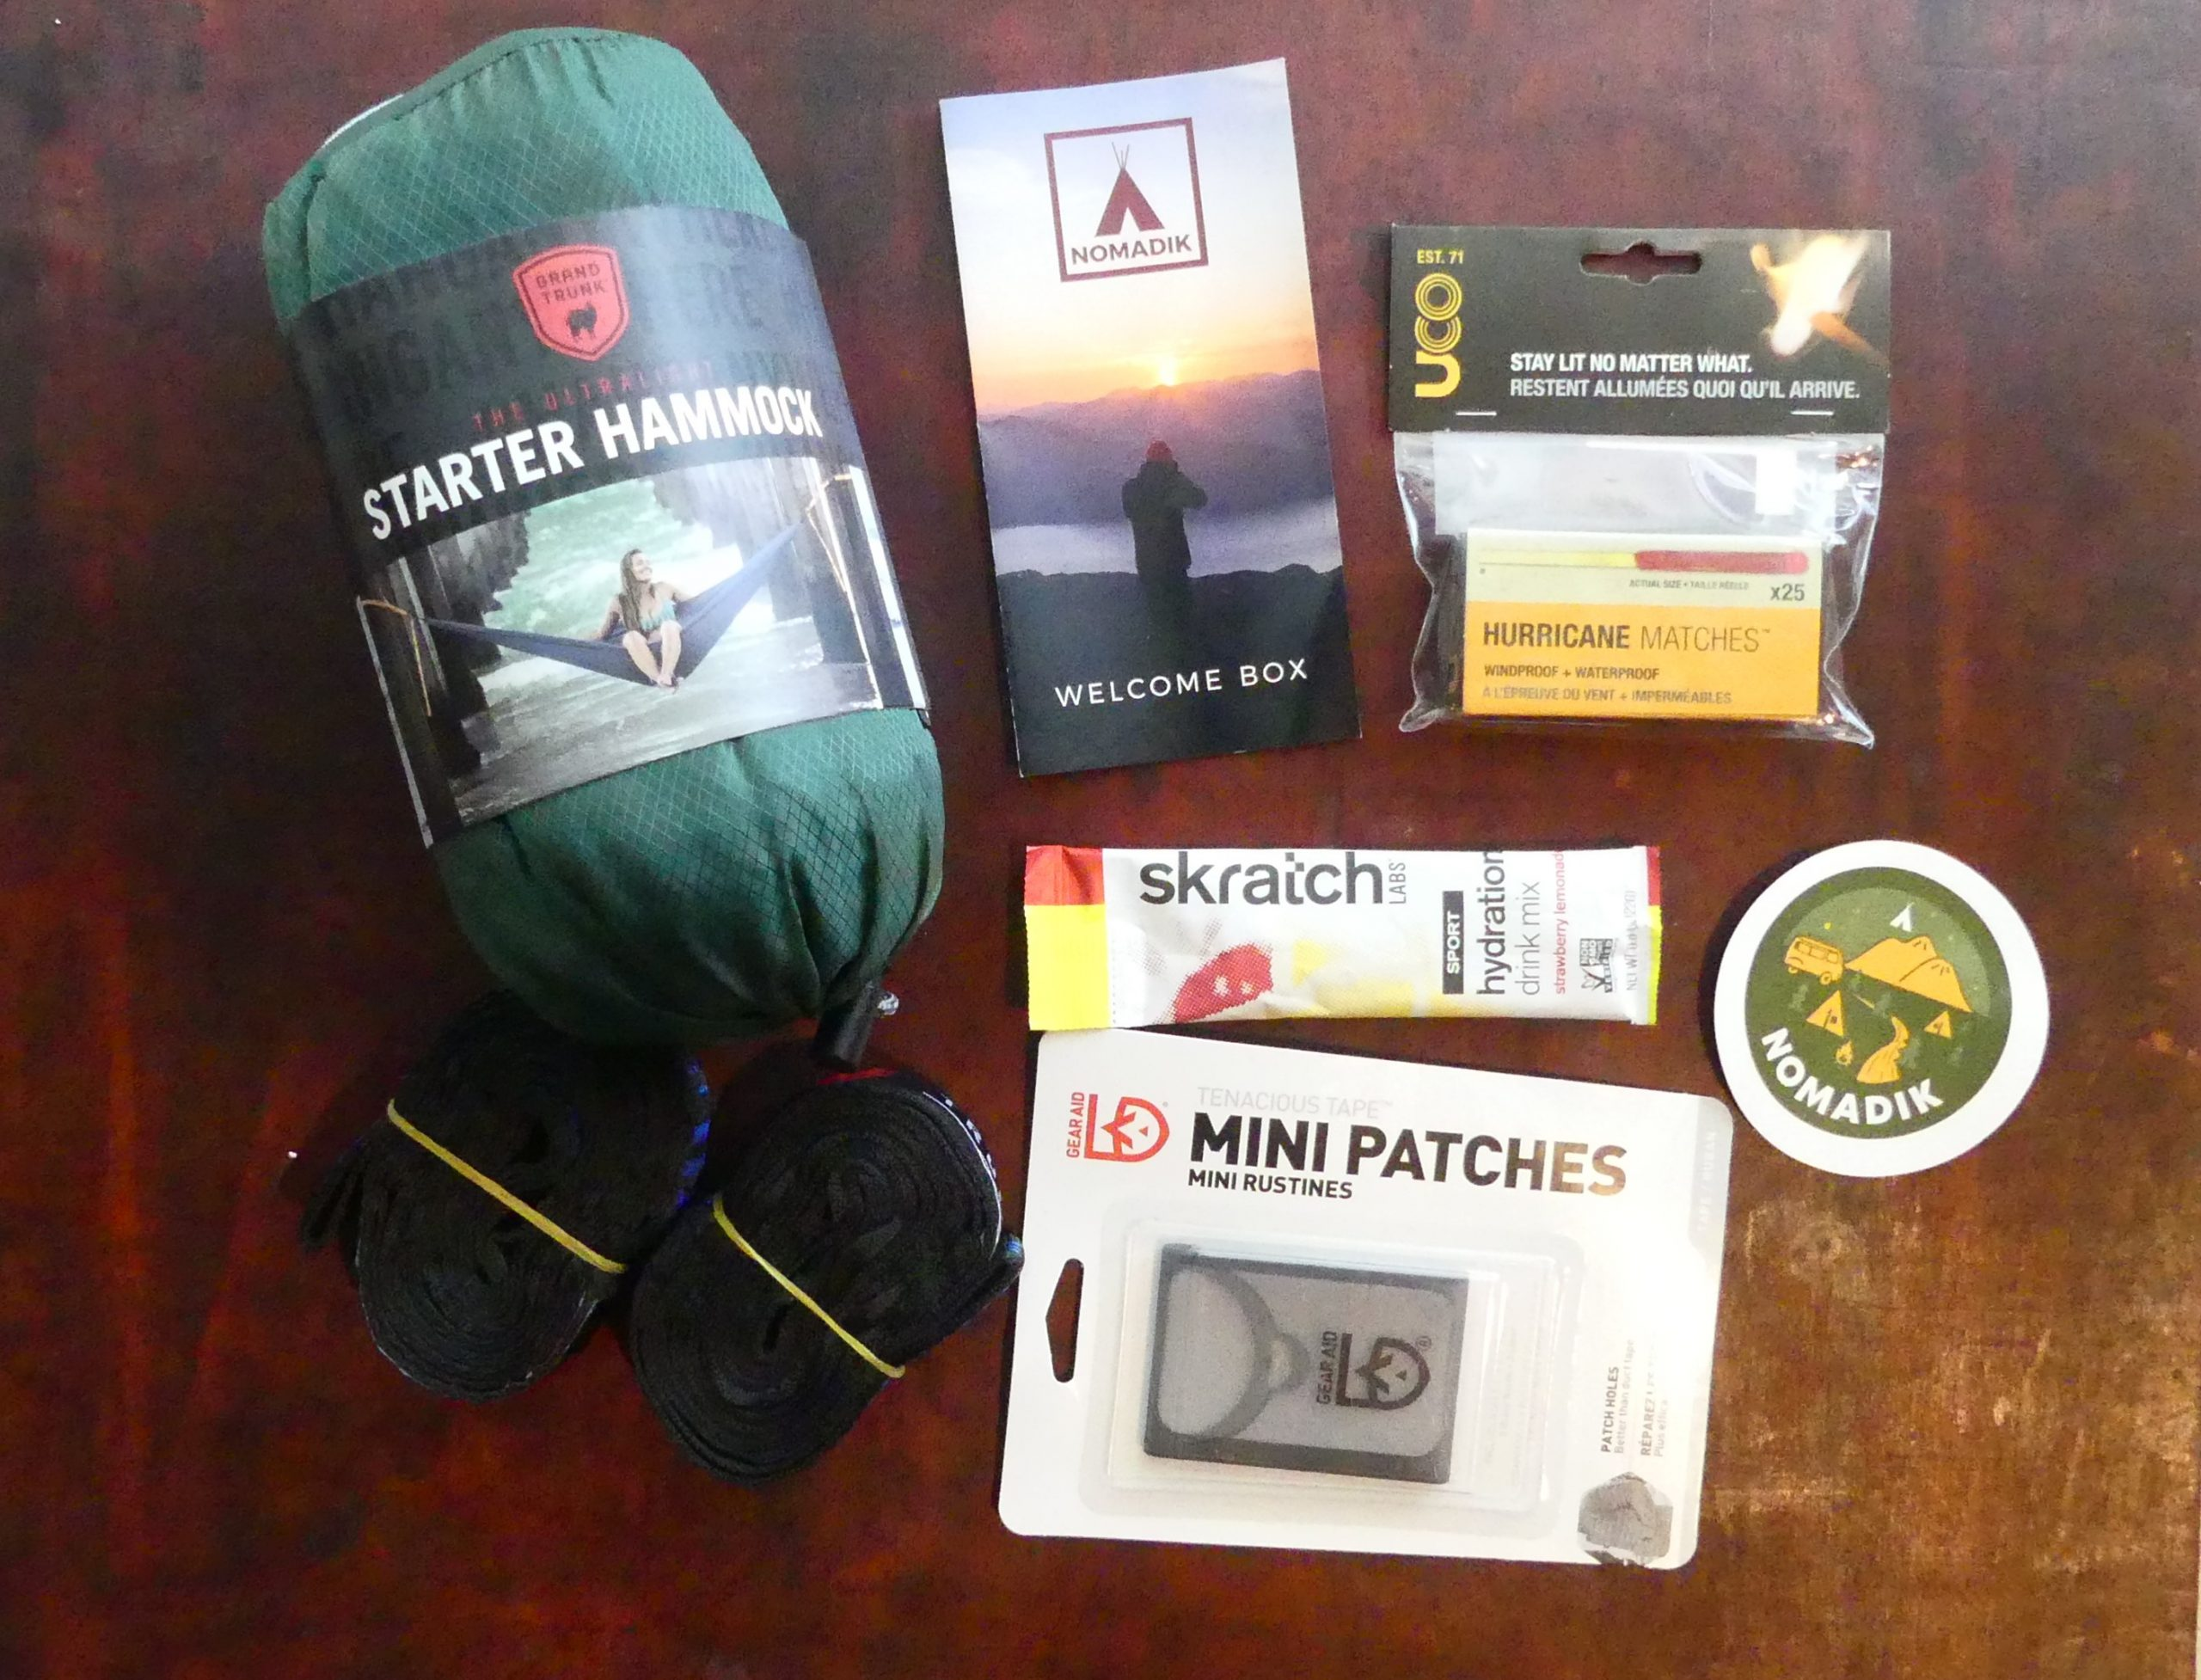 Nomadik Outdoor Gear Box Review of Welcome Box by Gifter World